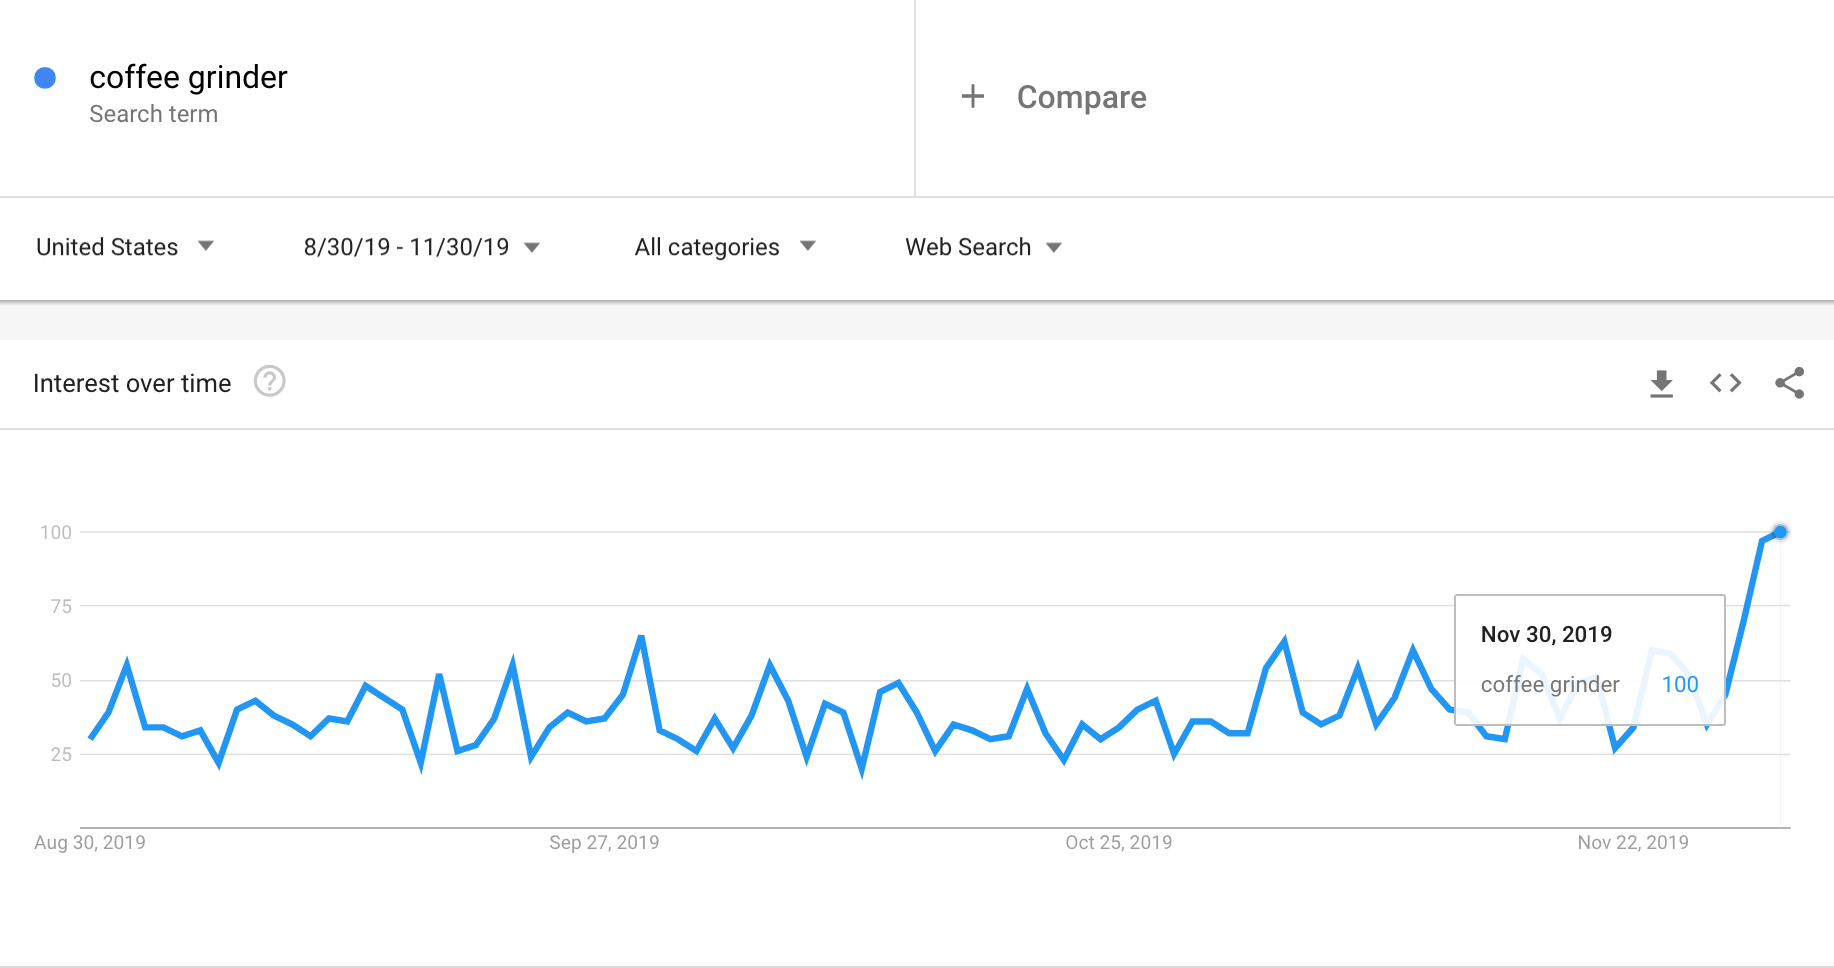 Google Trends graph showing the interest in coffee grinders